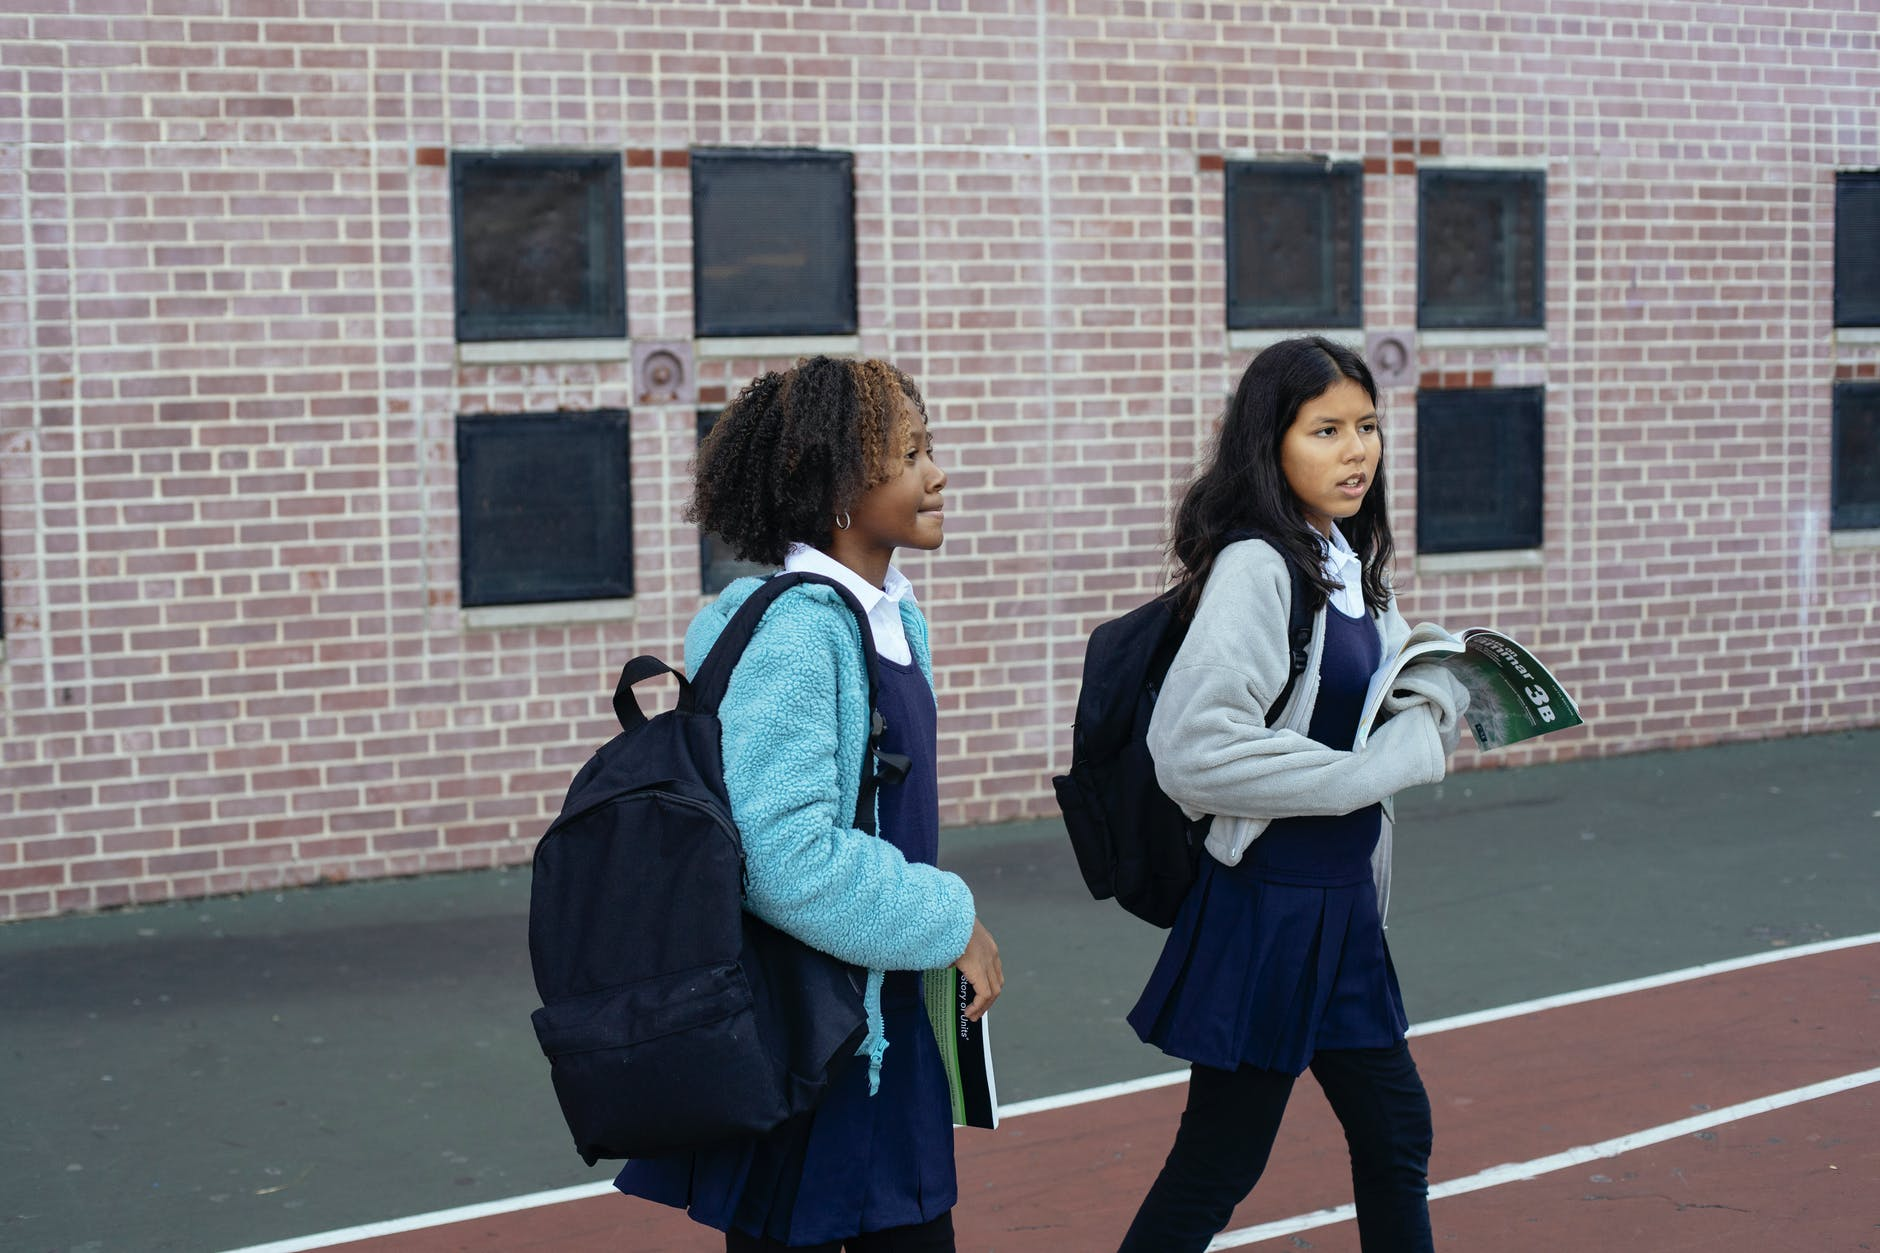 diverse girls in uniforms with backpacks walking on stadium